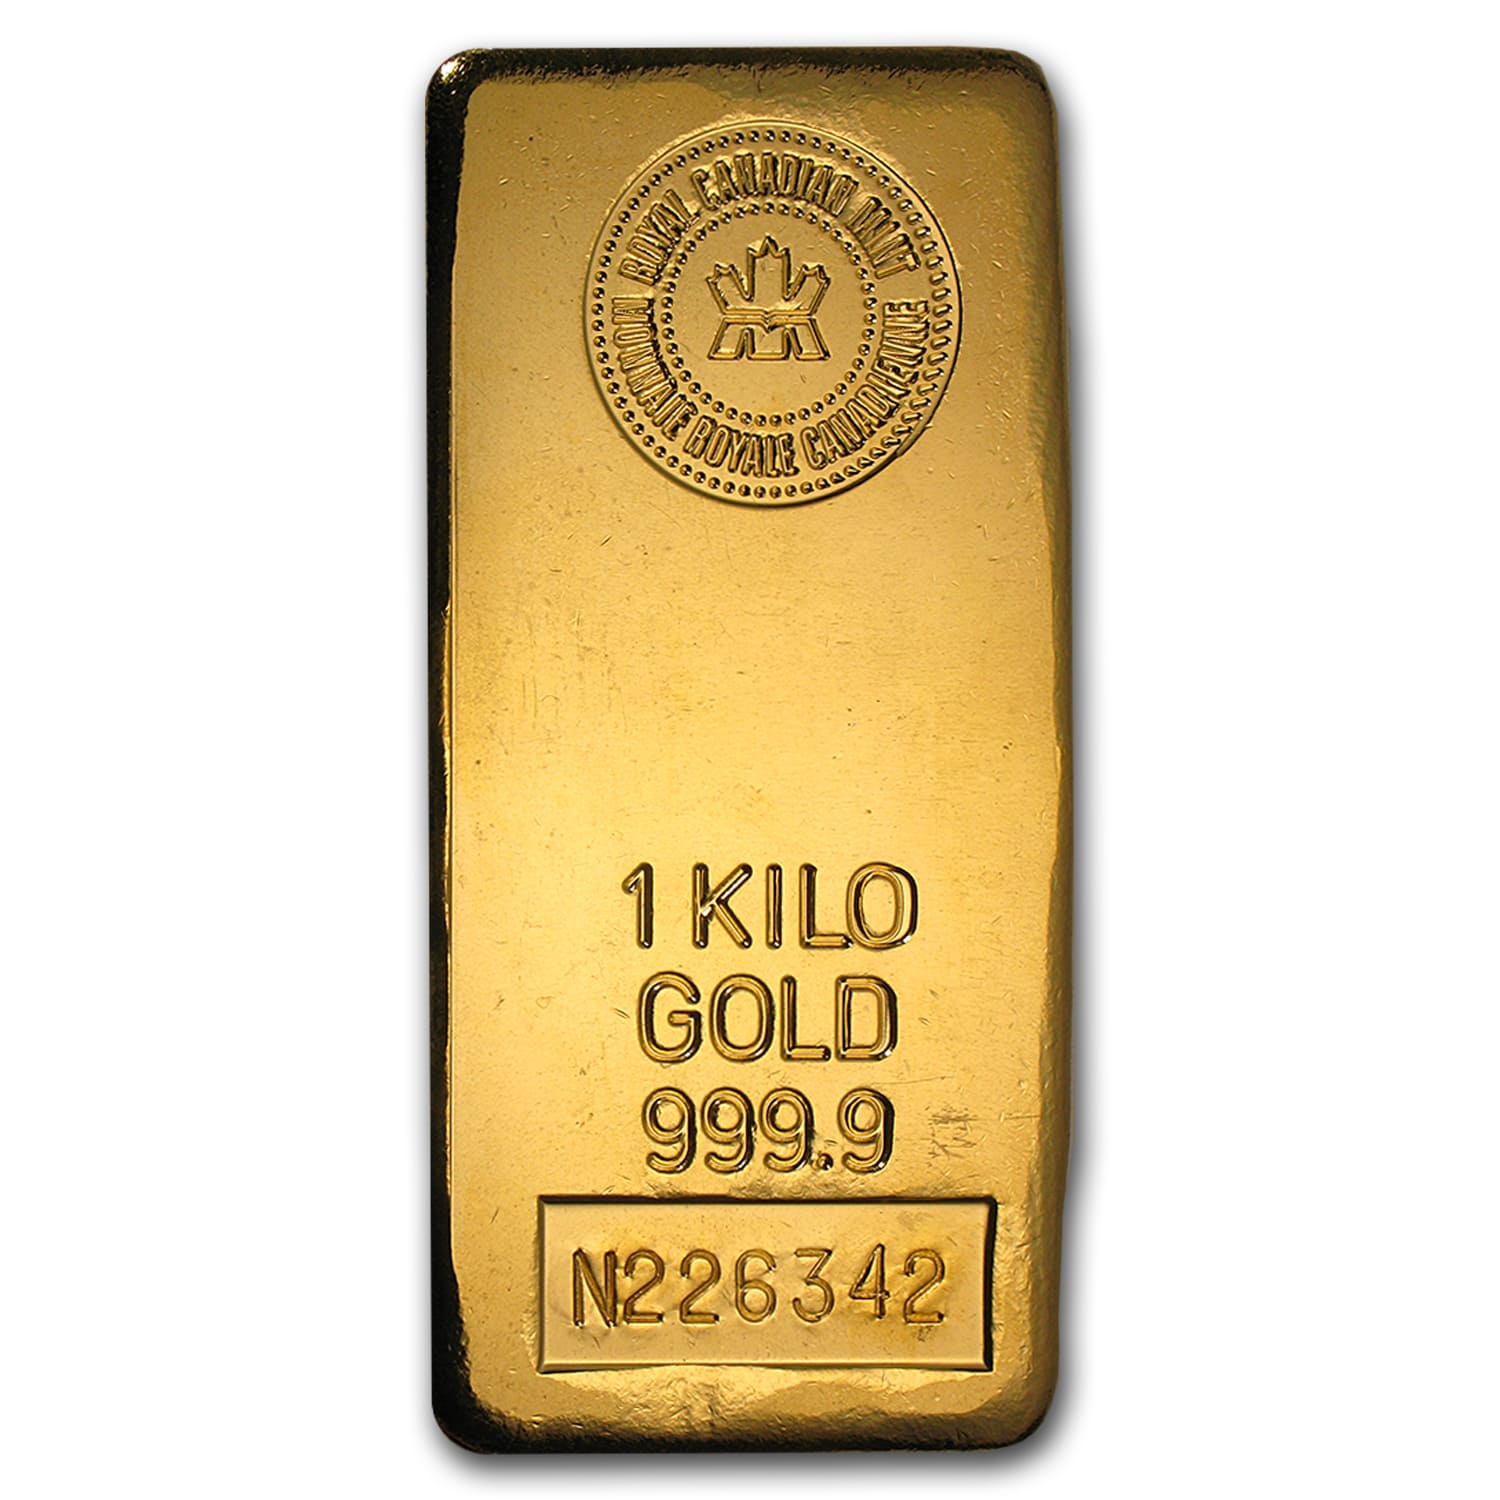 1 Kilo Gold Bars - Royal Canadian Mint